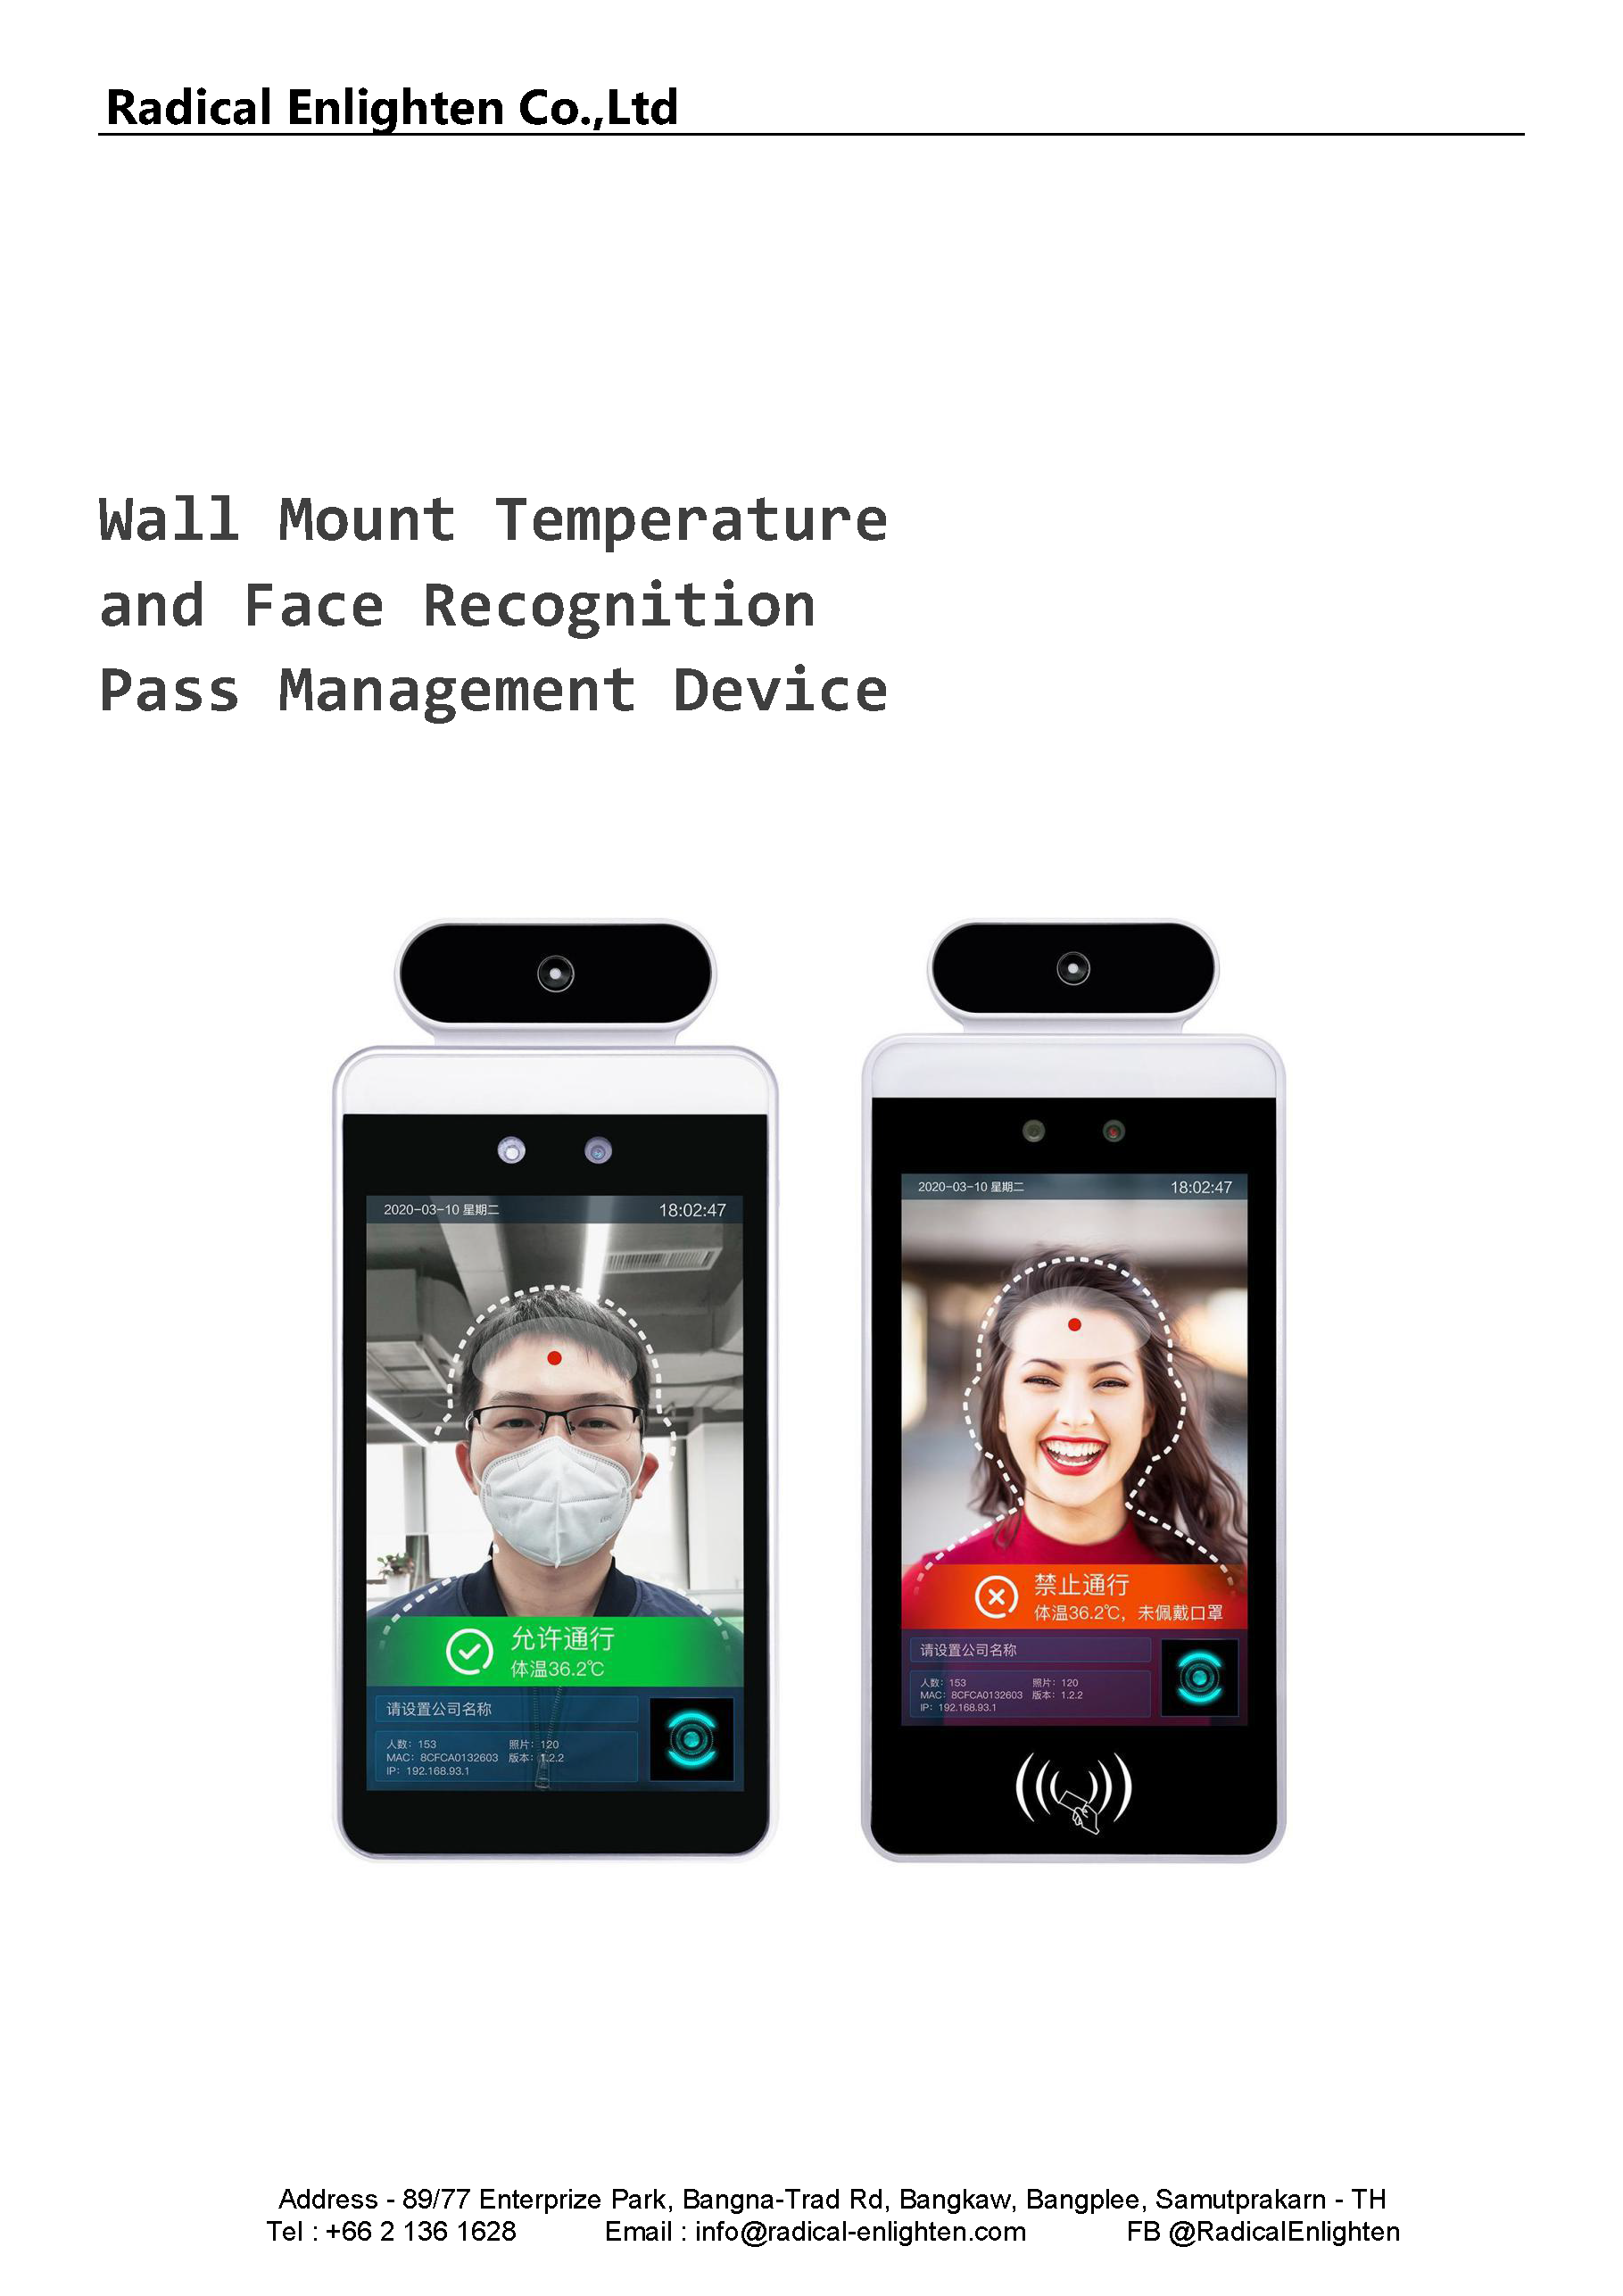 Temperature and face recognition Check in